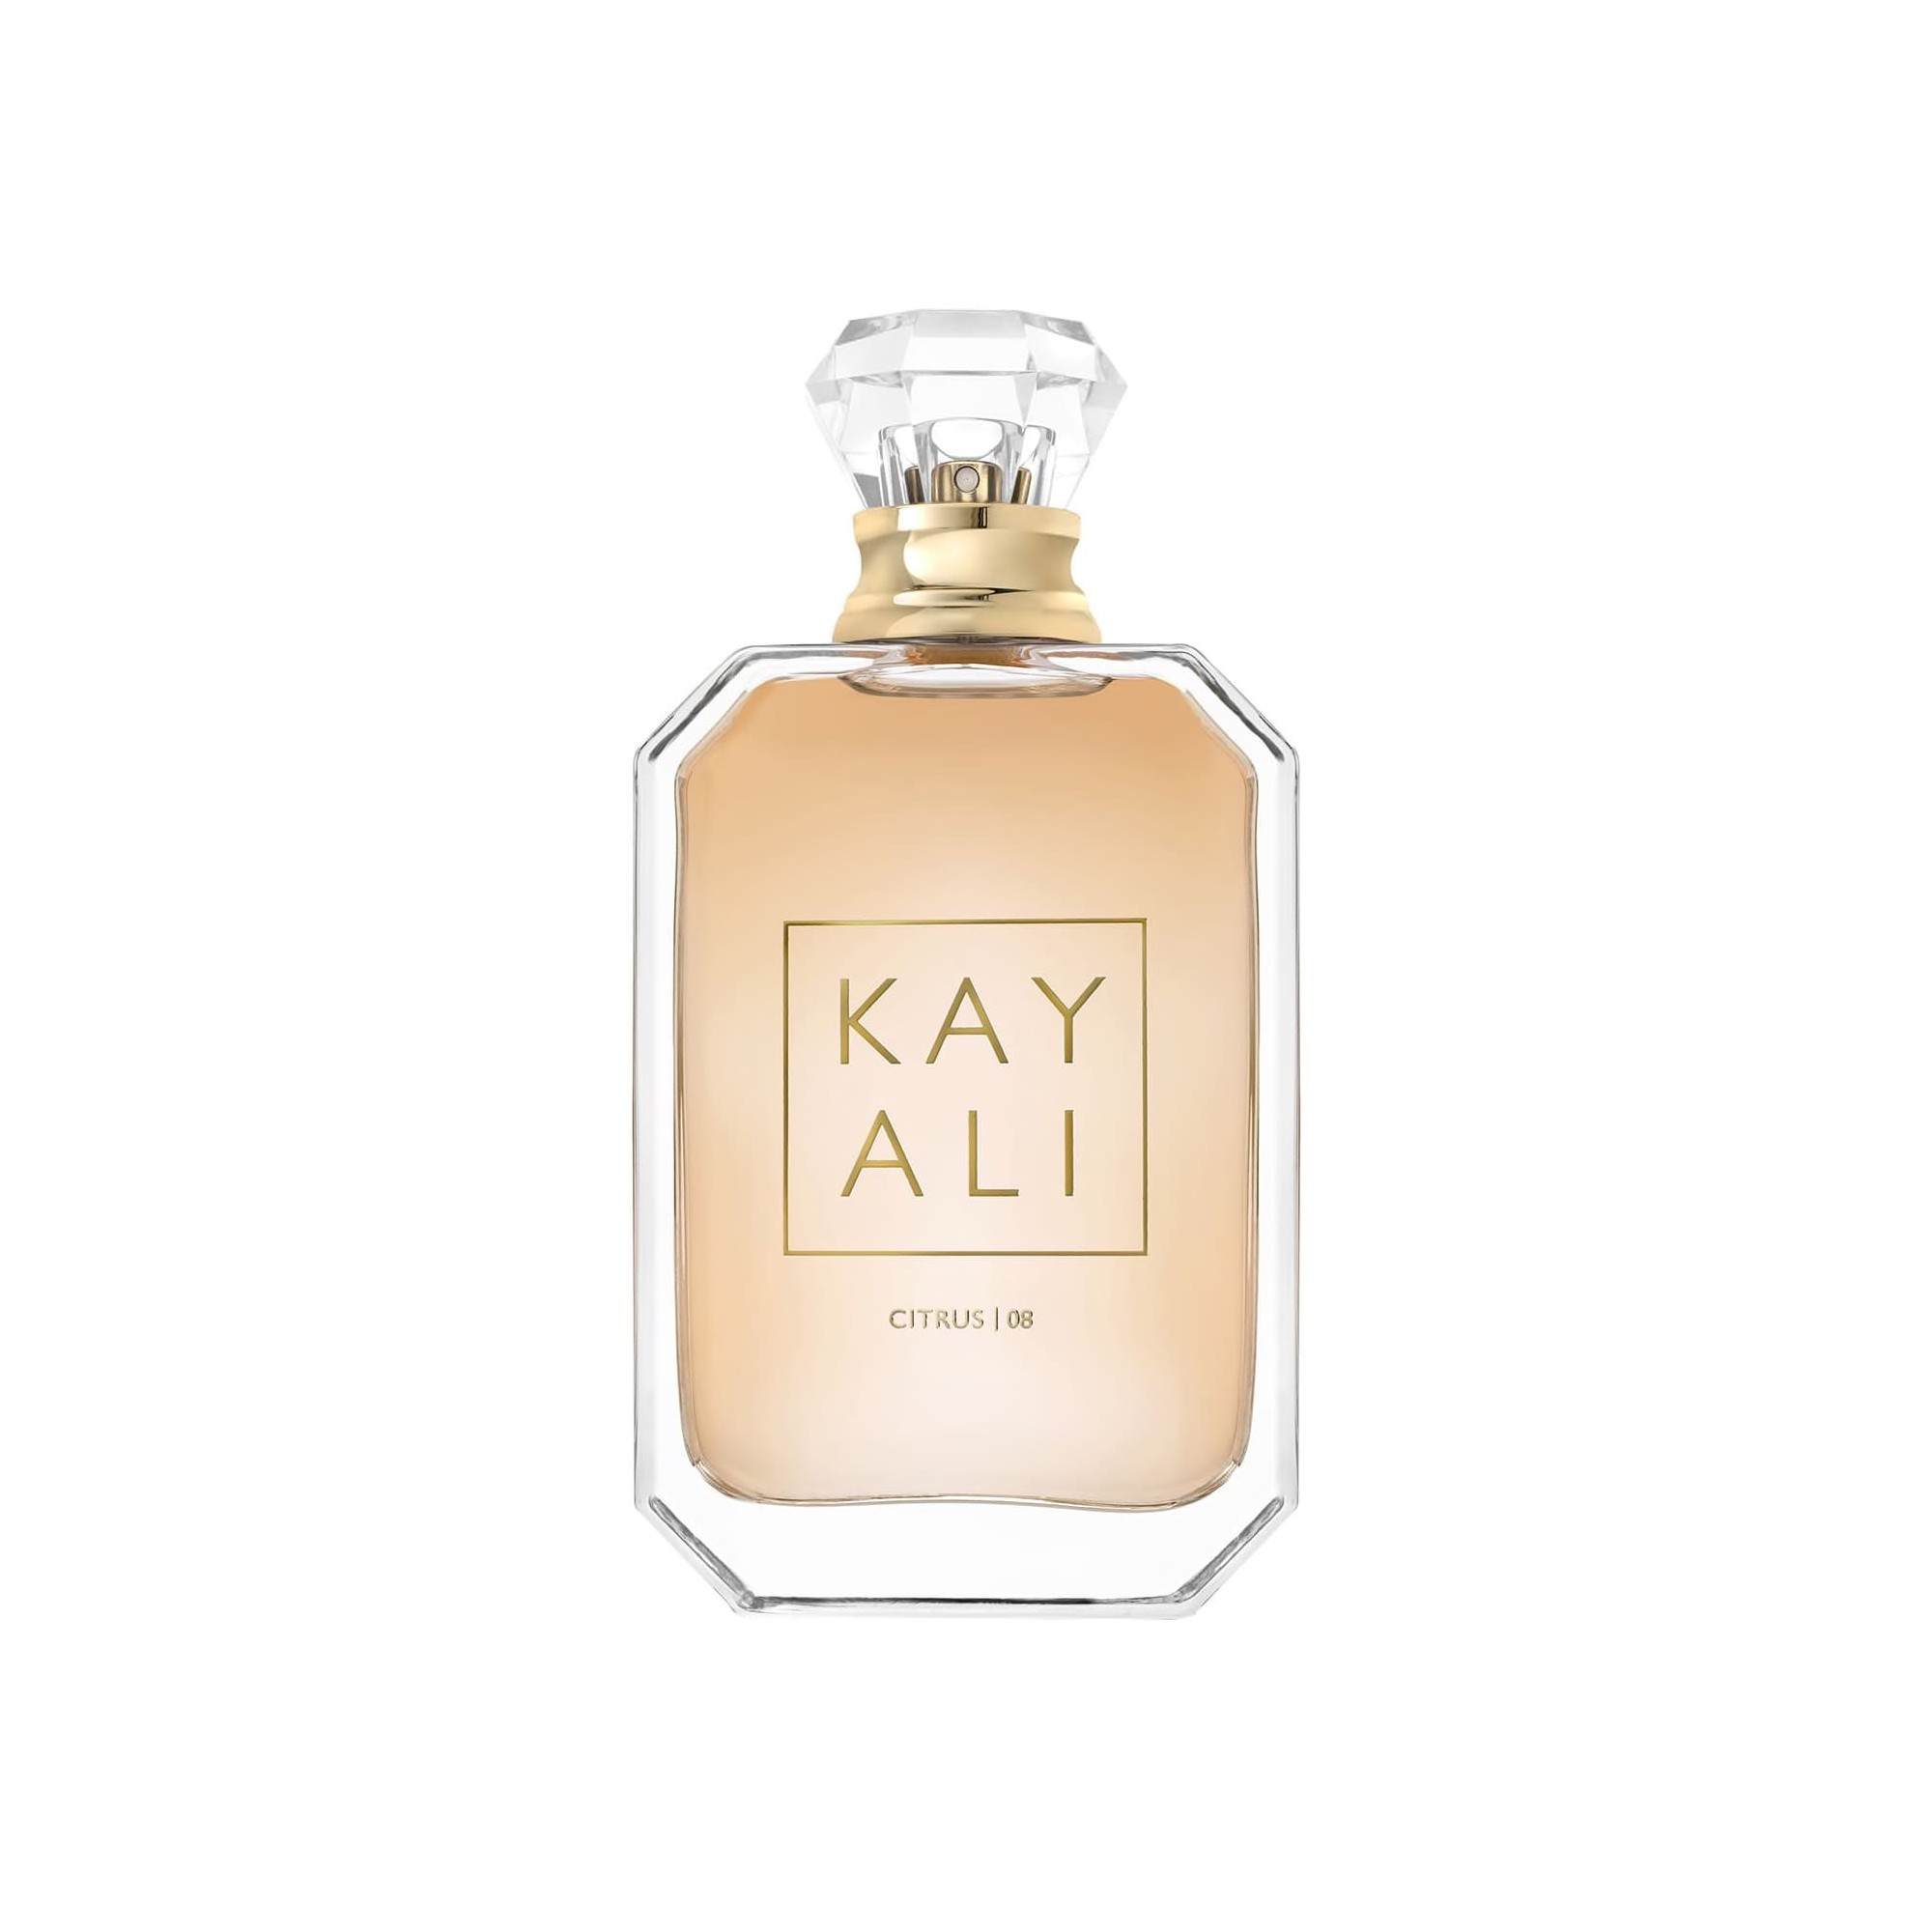 Kayali Citrus | 08